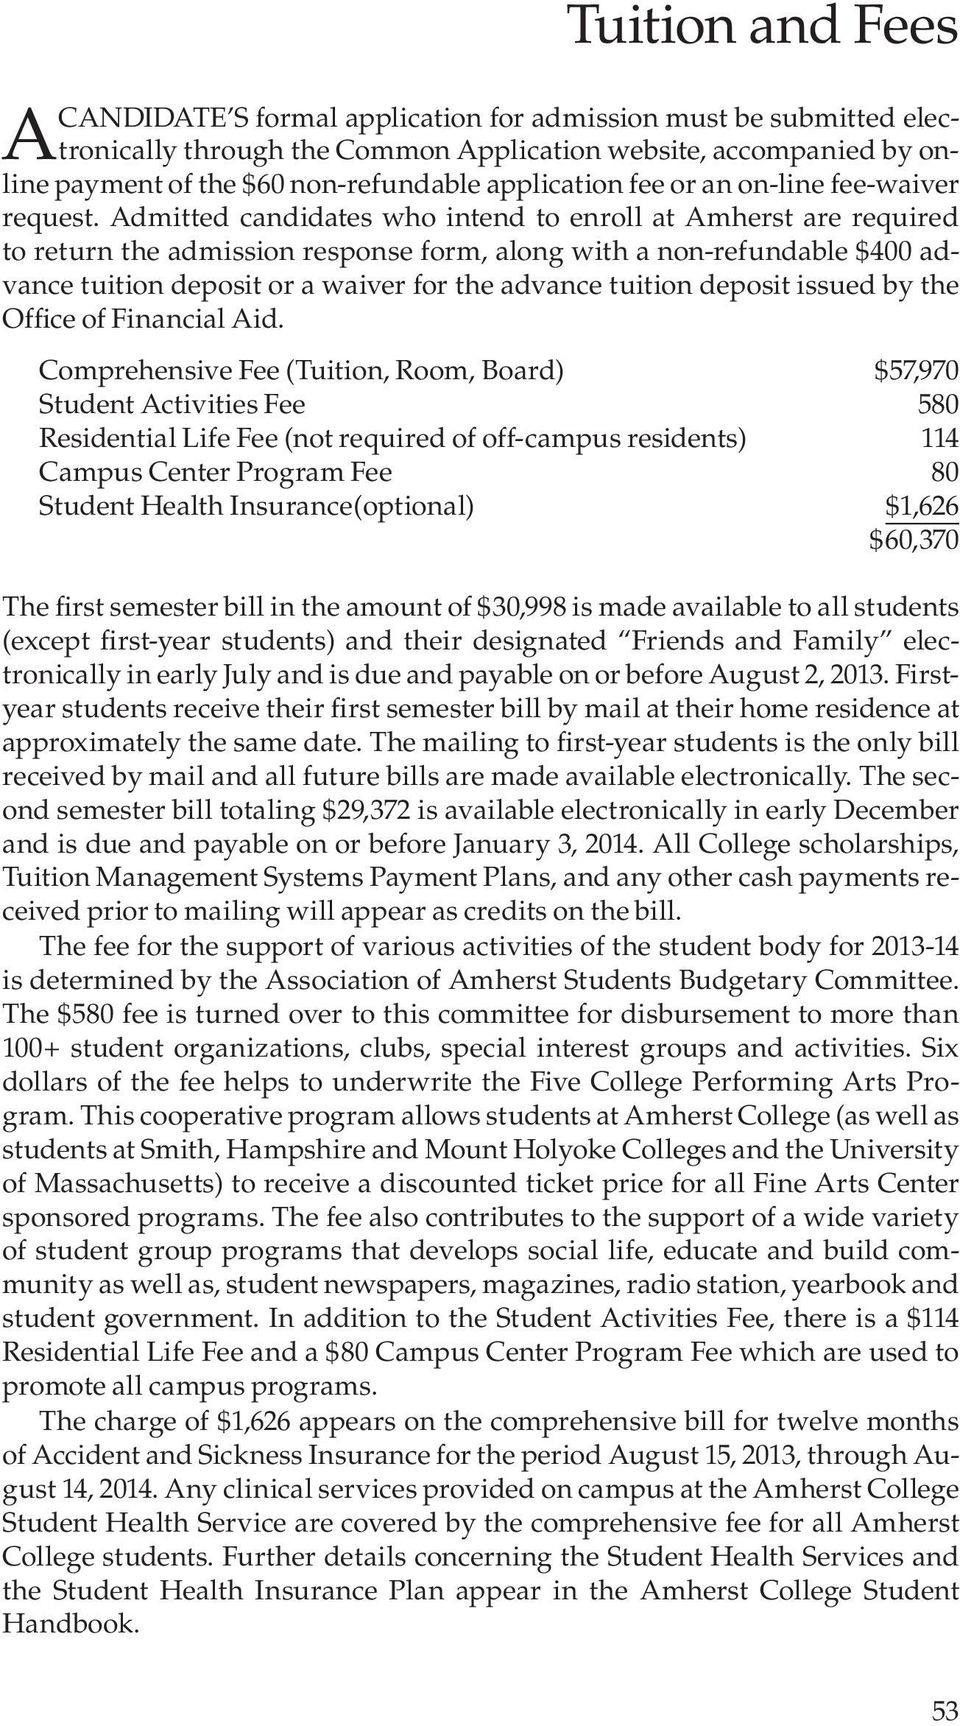 Admitted candidates who intend to enroll at Amherst are required to return the admission response form, along with a non-refundable $400 advance tuition deposit or a waiver for the advance tuition